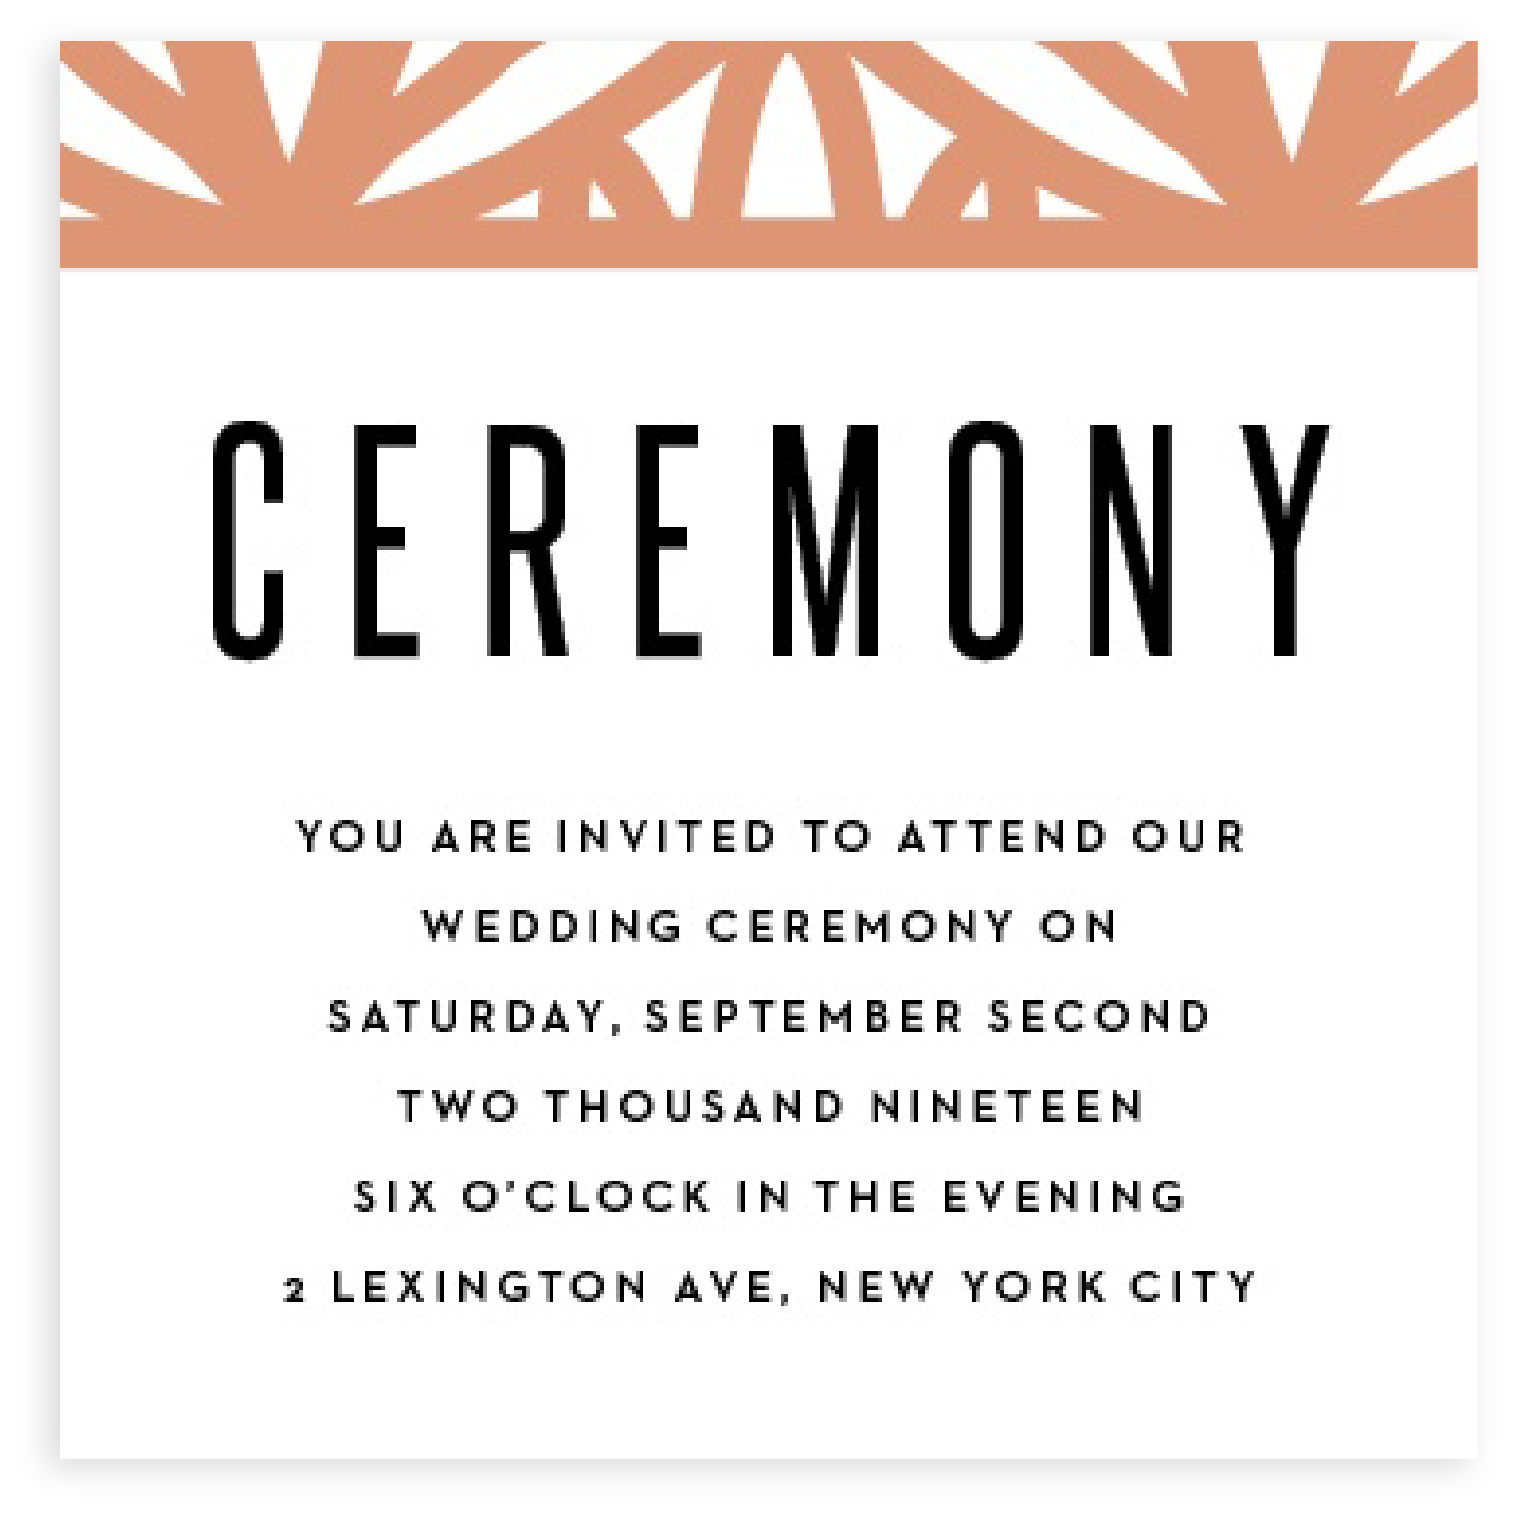 Small Ceremony Big Reception Invitations: Ceremony Card Wording